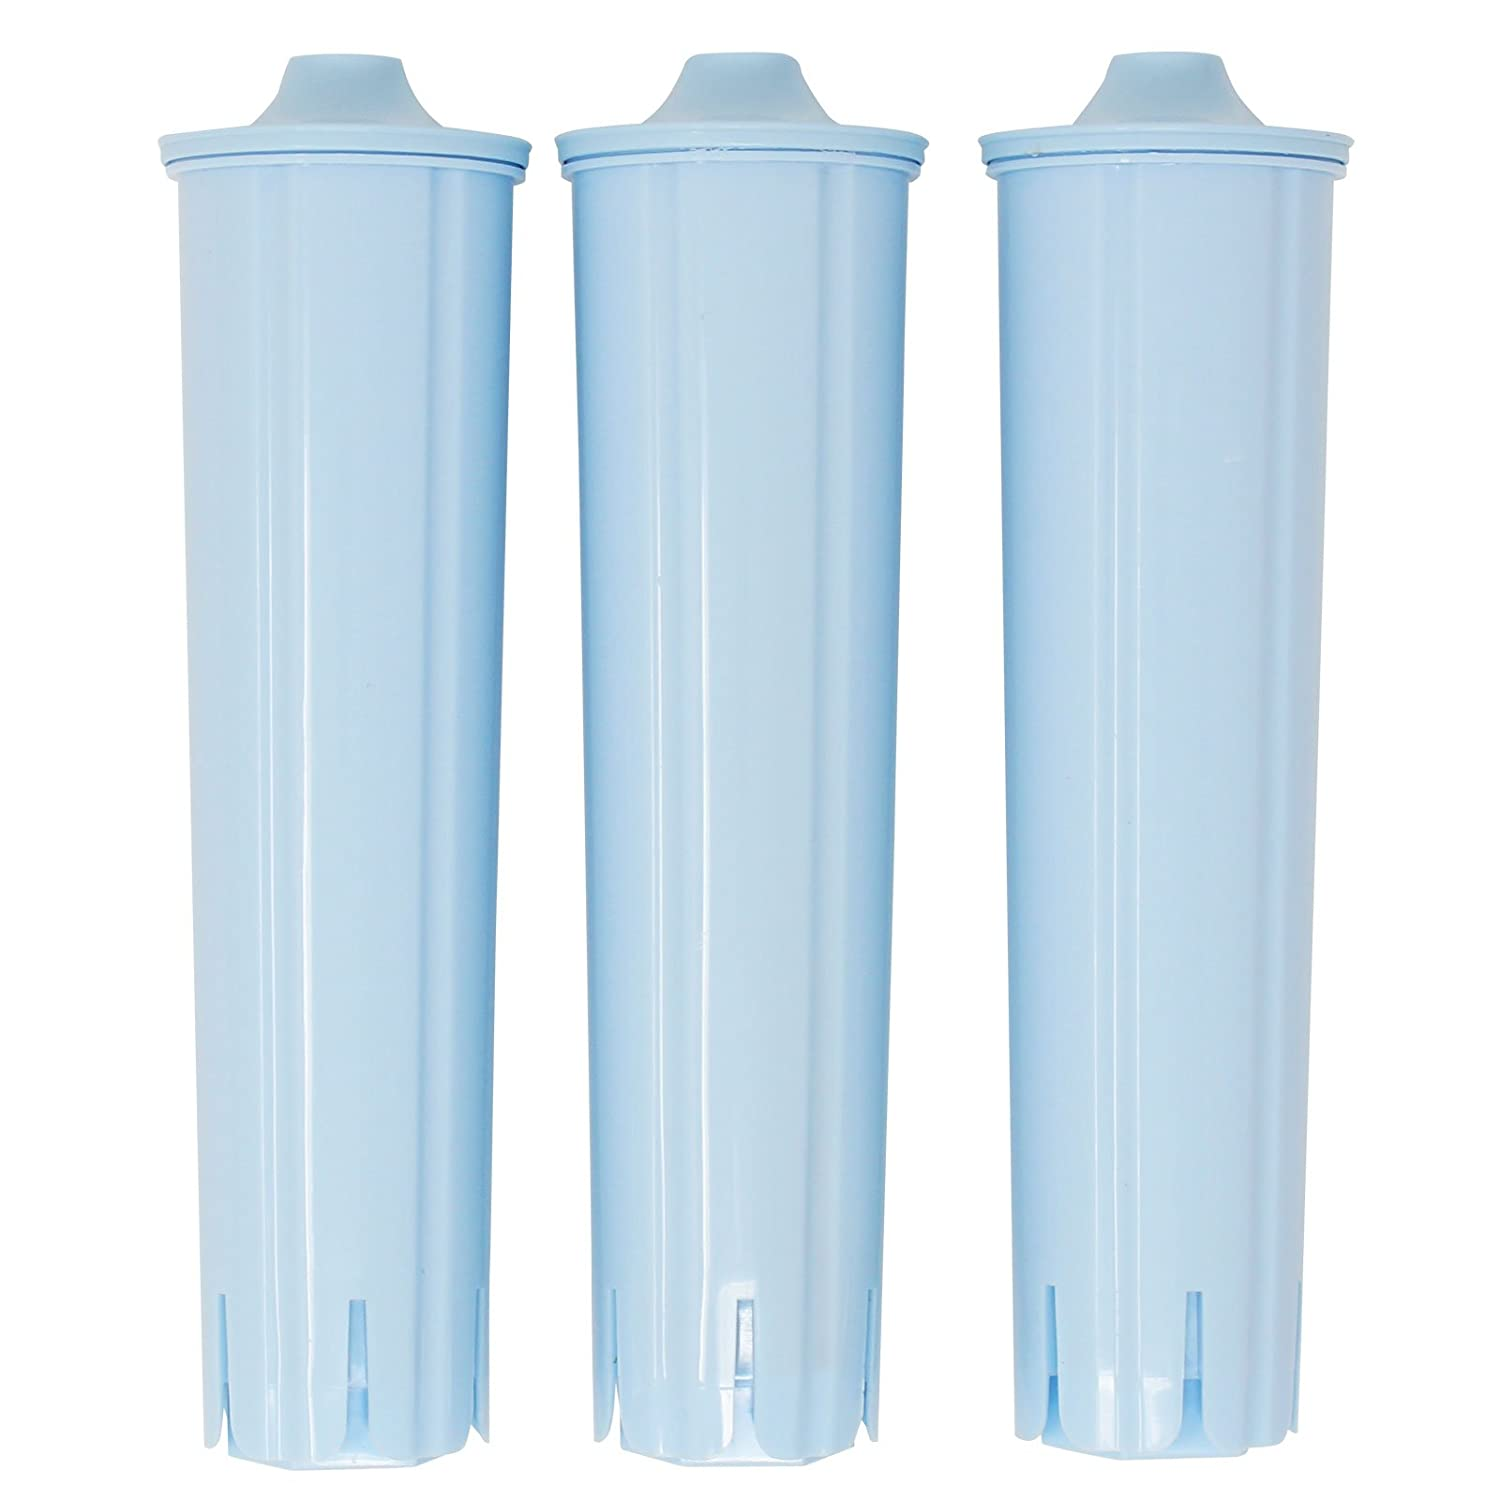 3 Replacement Water Filter Cartridge for Jura-Capresso ENA Micro 9 Fully Automatic Coffee Center - Compatible Jura Clearyl Blue Water Filter Denali Pure CF-CLEARYL-BLU-DL14